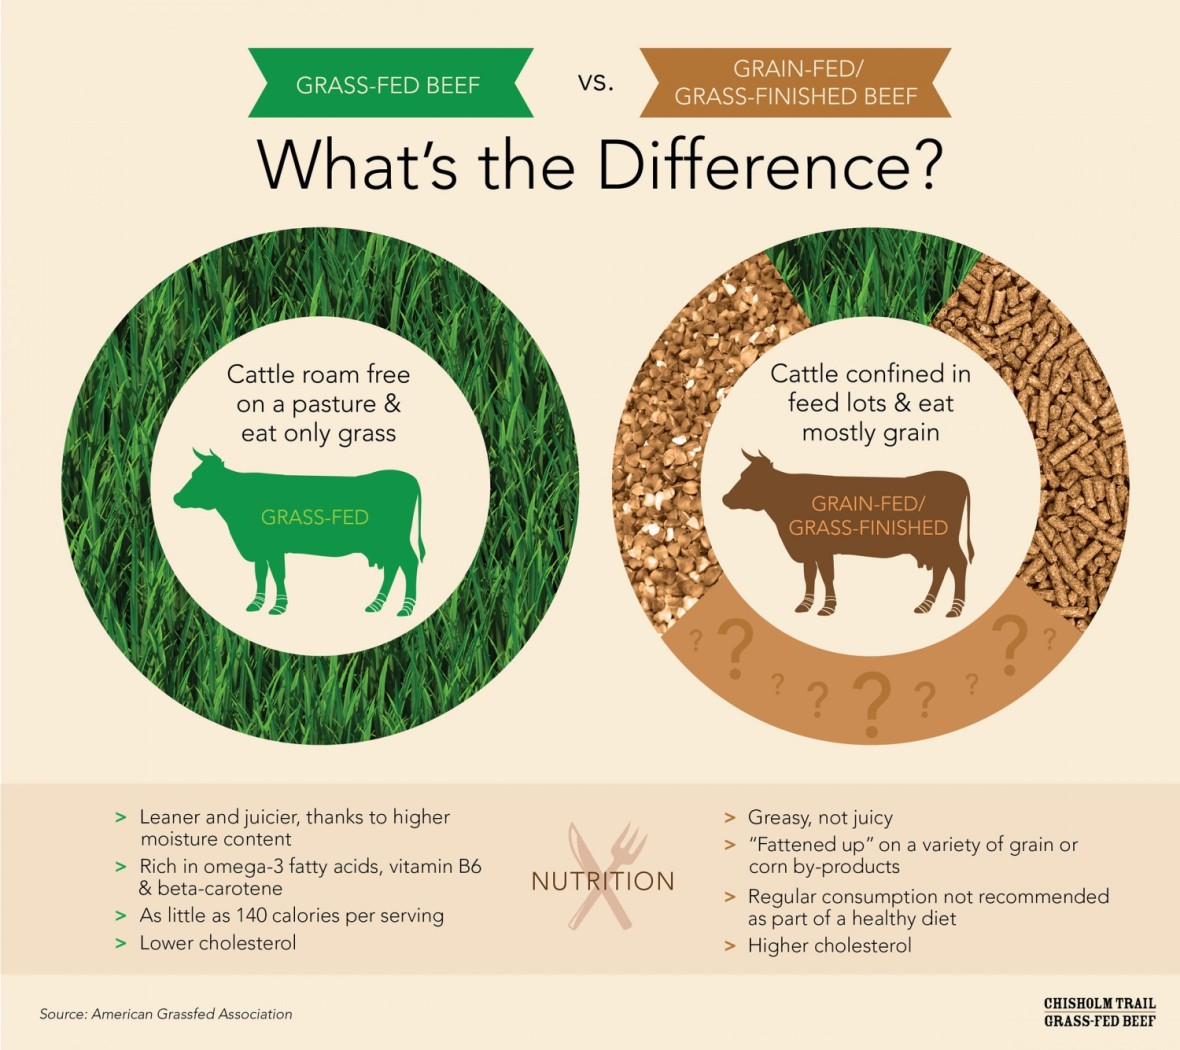 grassfed-vs-grassfinished-beef-whats-the-difference_5208e5995e6b6_w1500